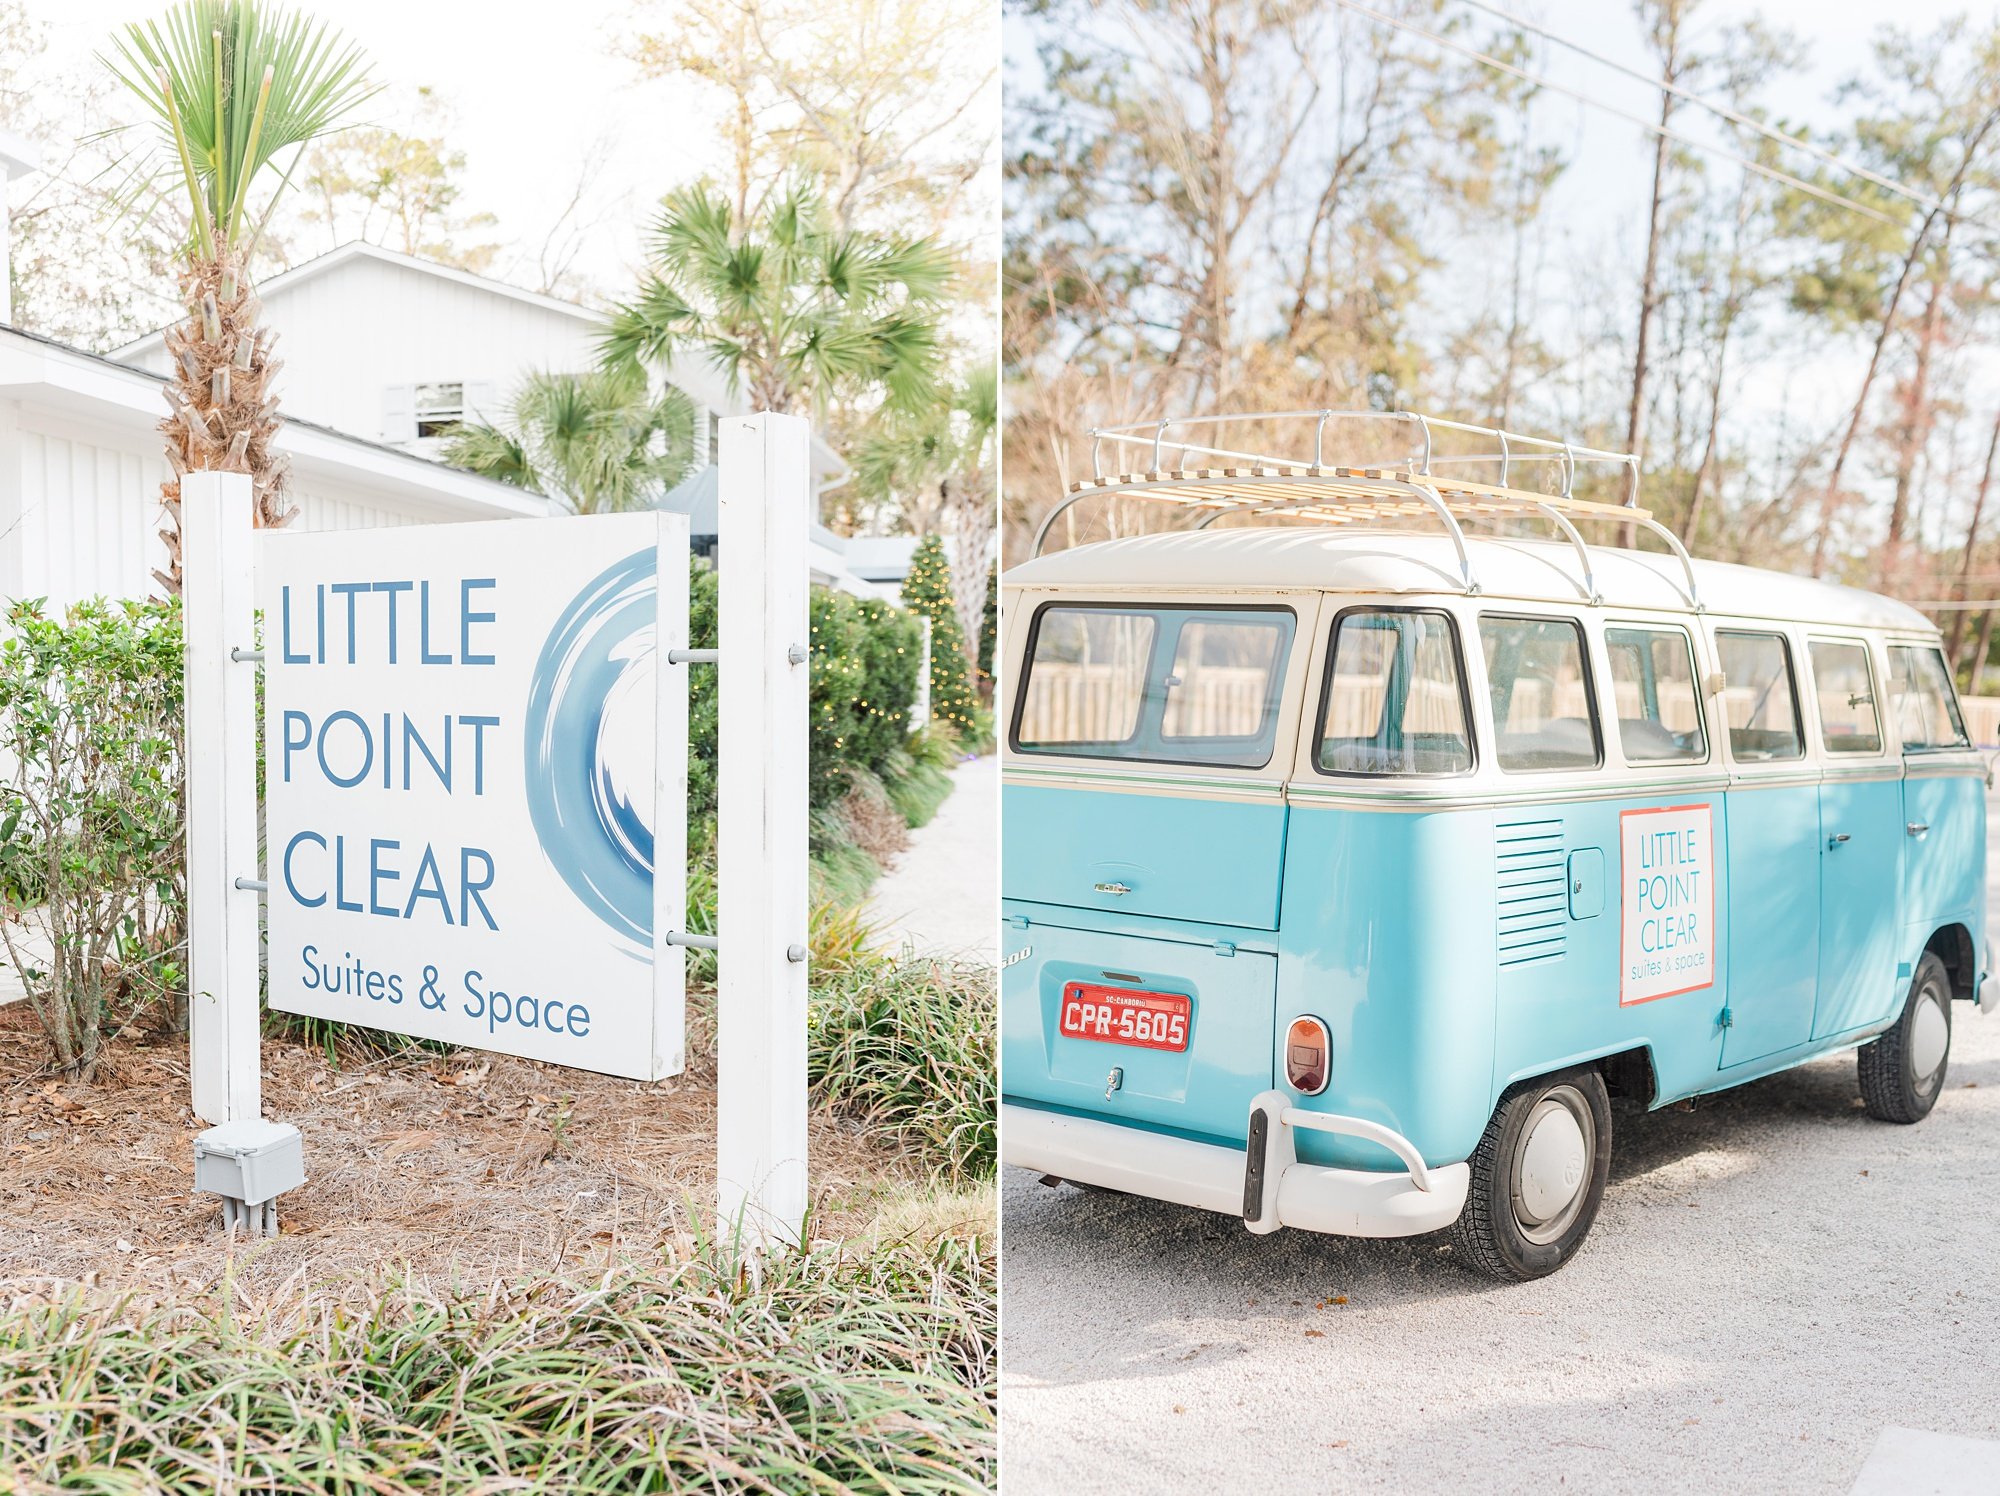 Little Point Clear wedding day with VW bus